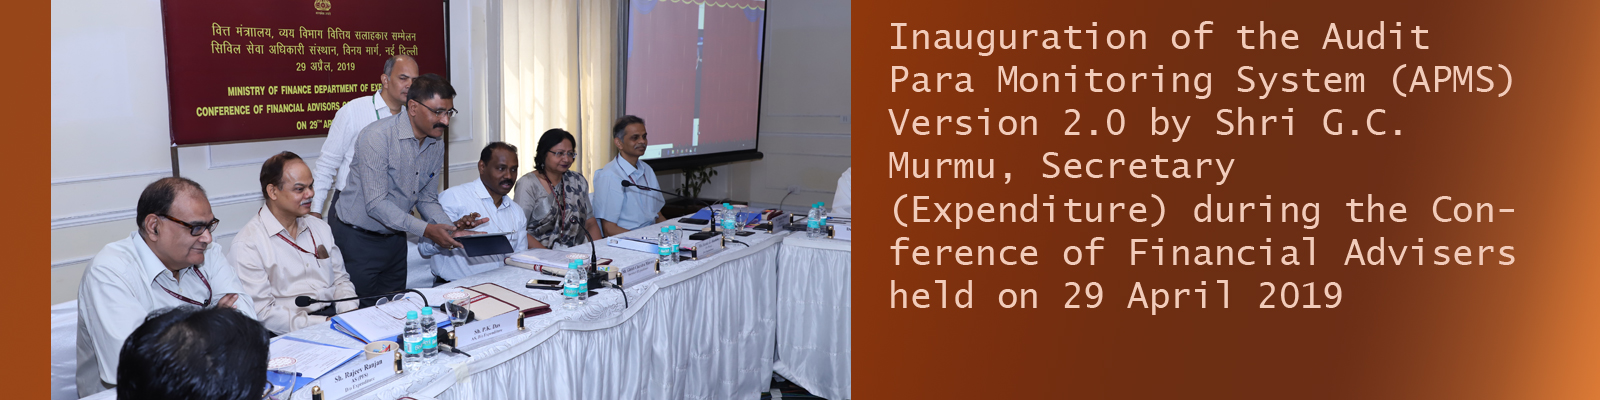 Inauguration of the Audit Para Monitoring System APMS Version 2.0 by Shri G.C. Murmu, Secretary Expenditure during the Conference of Financial Advisers